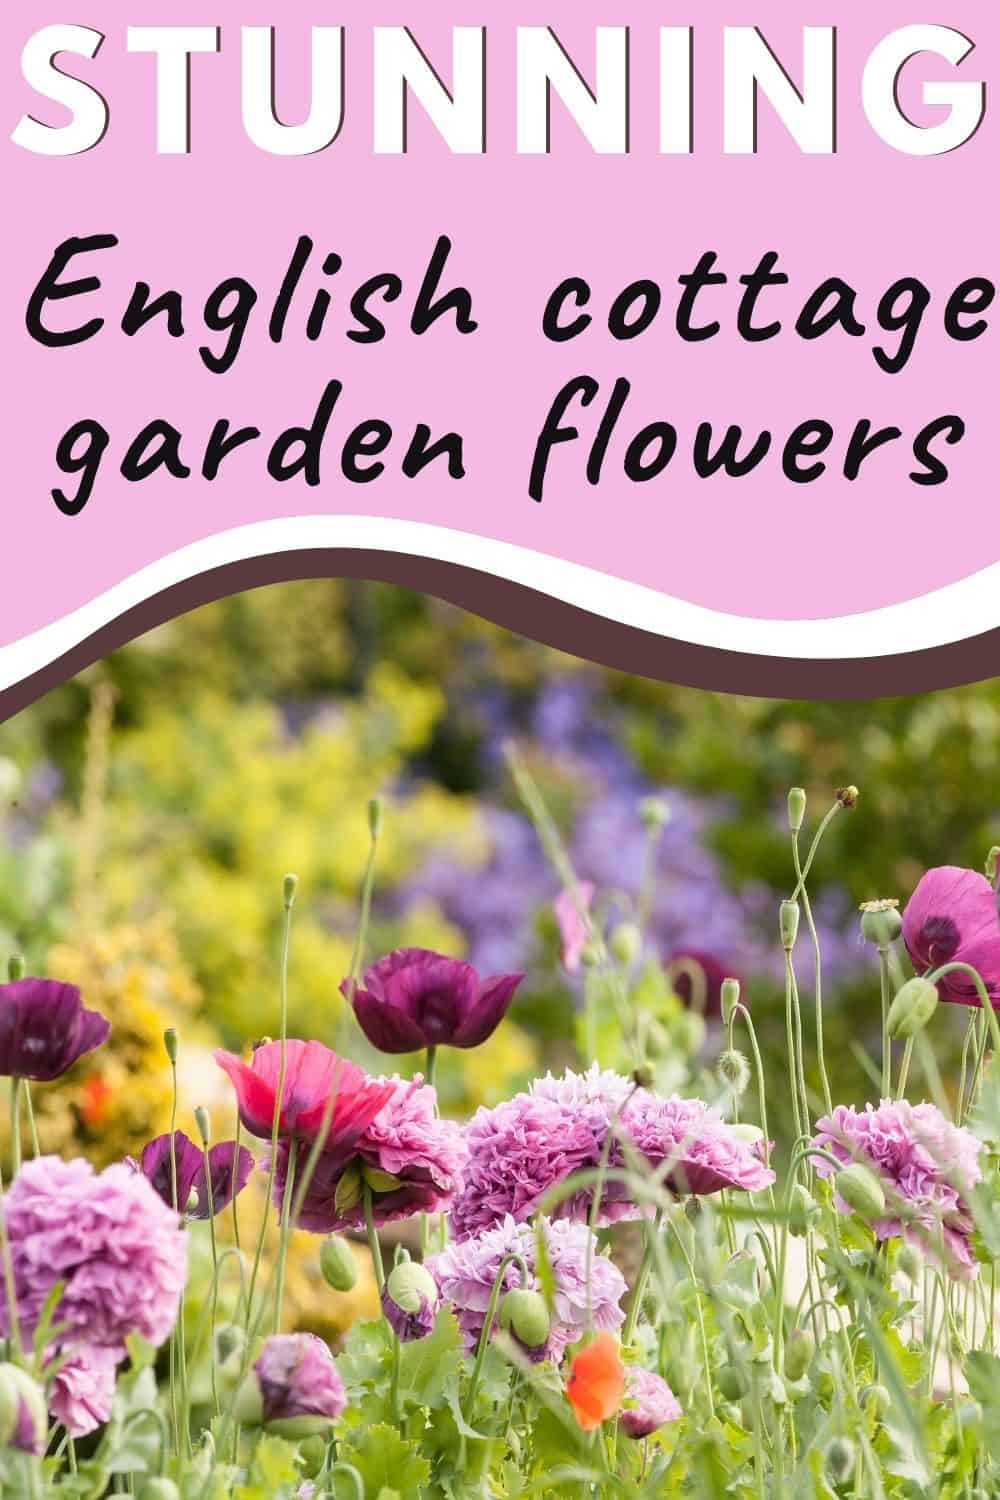 Stunning English cottage garden flowers